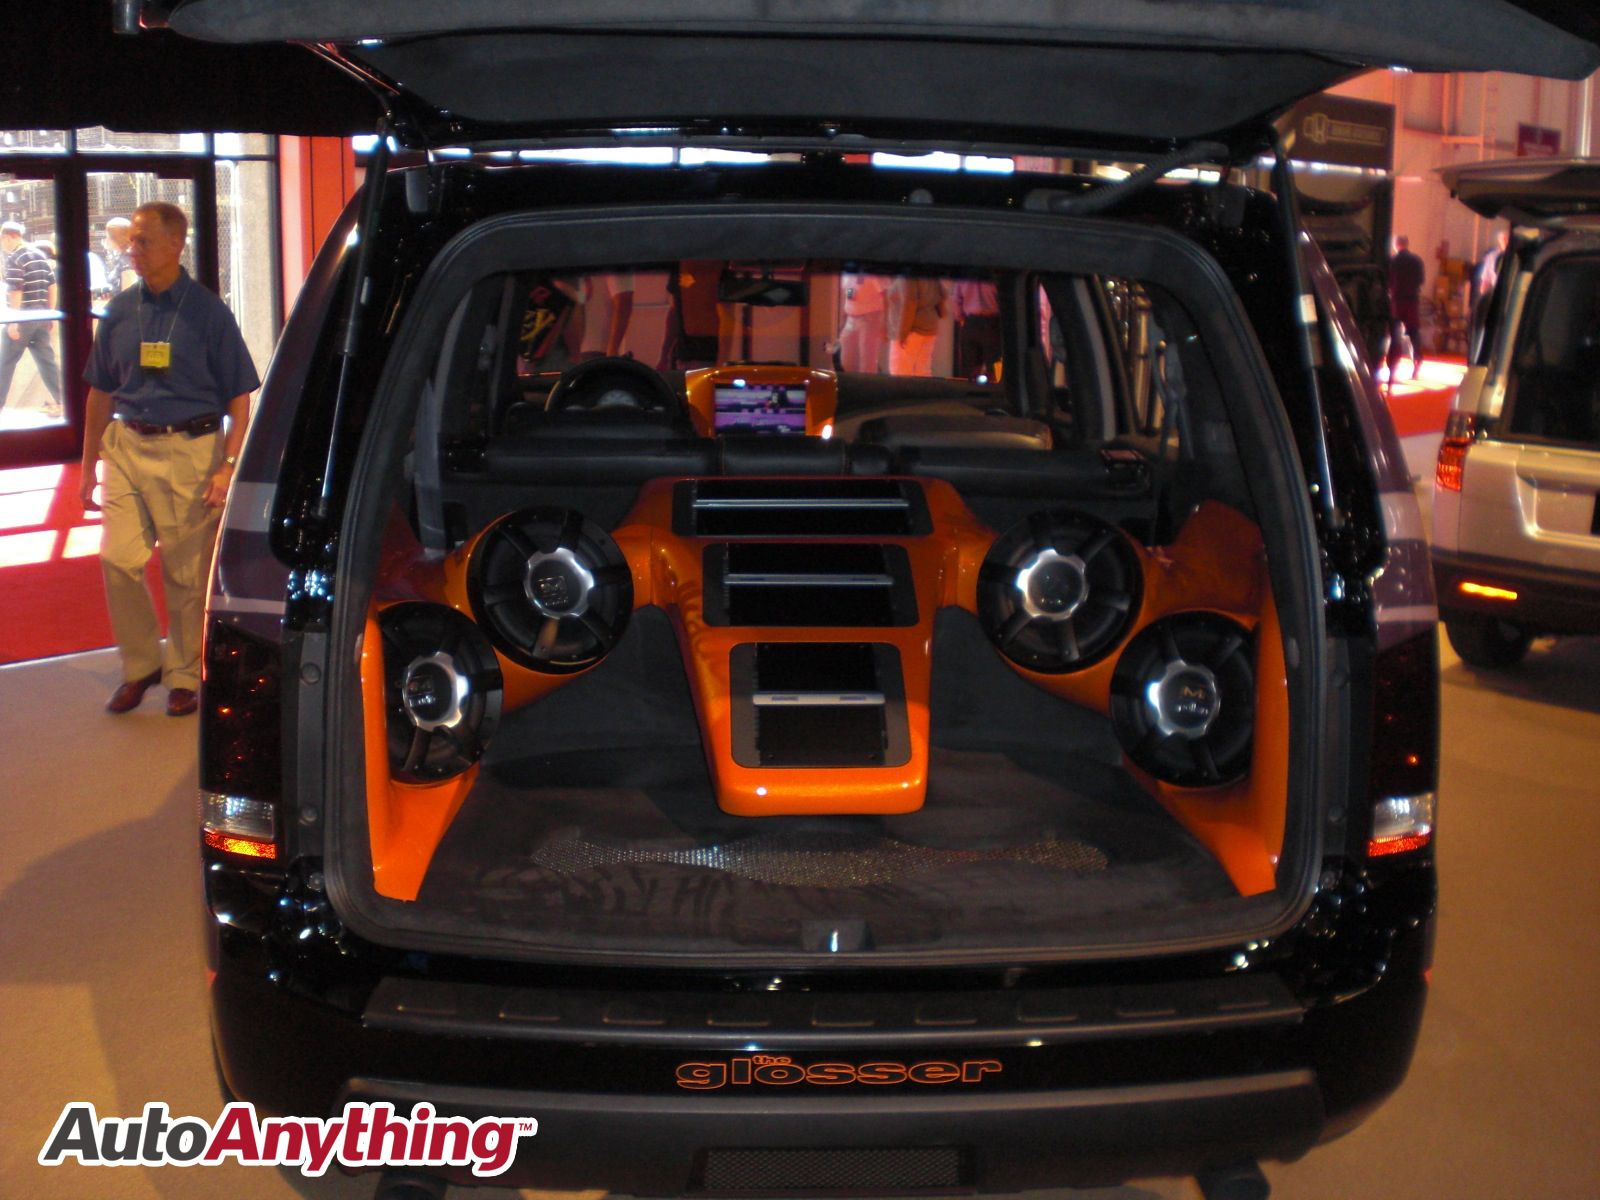 get 20 sound systems for cars ideas on pinterest without signing